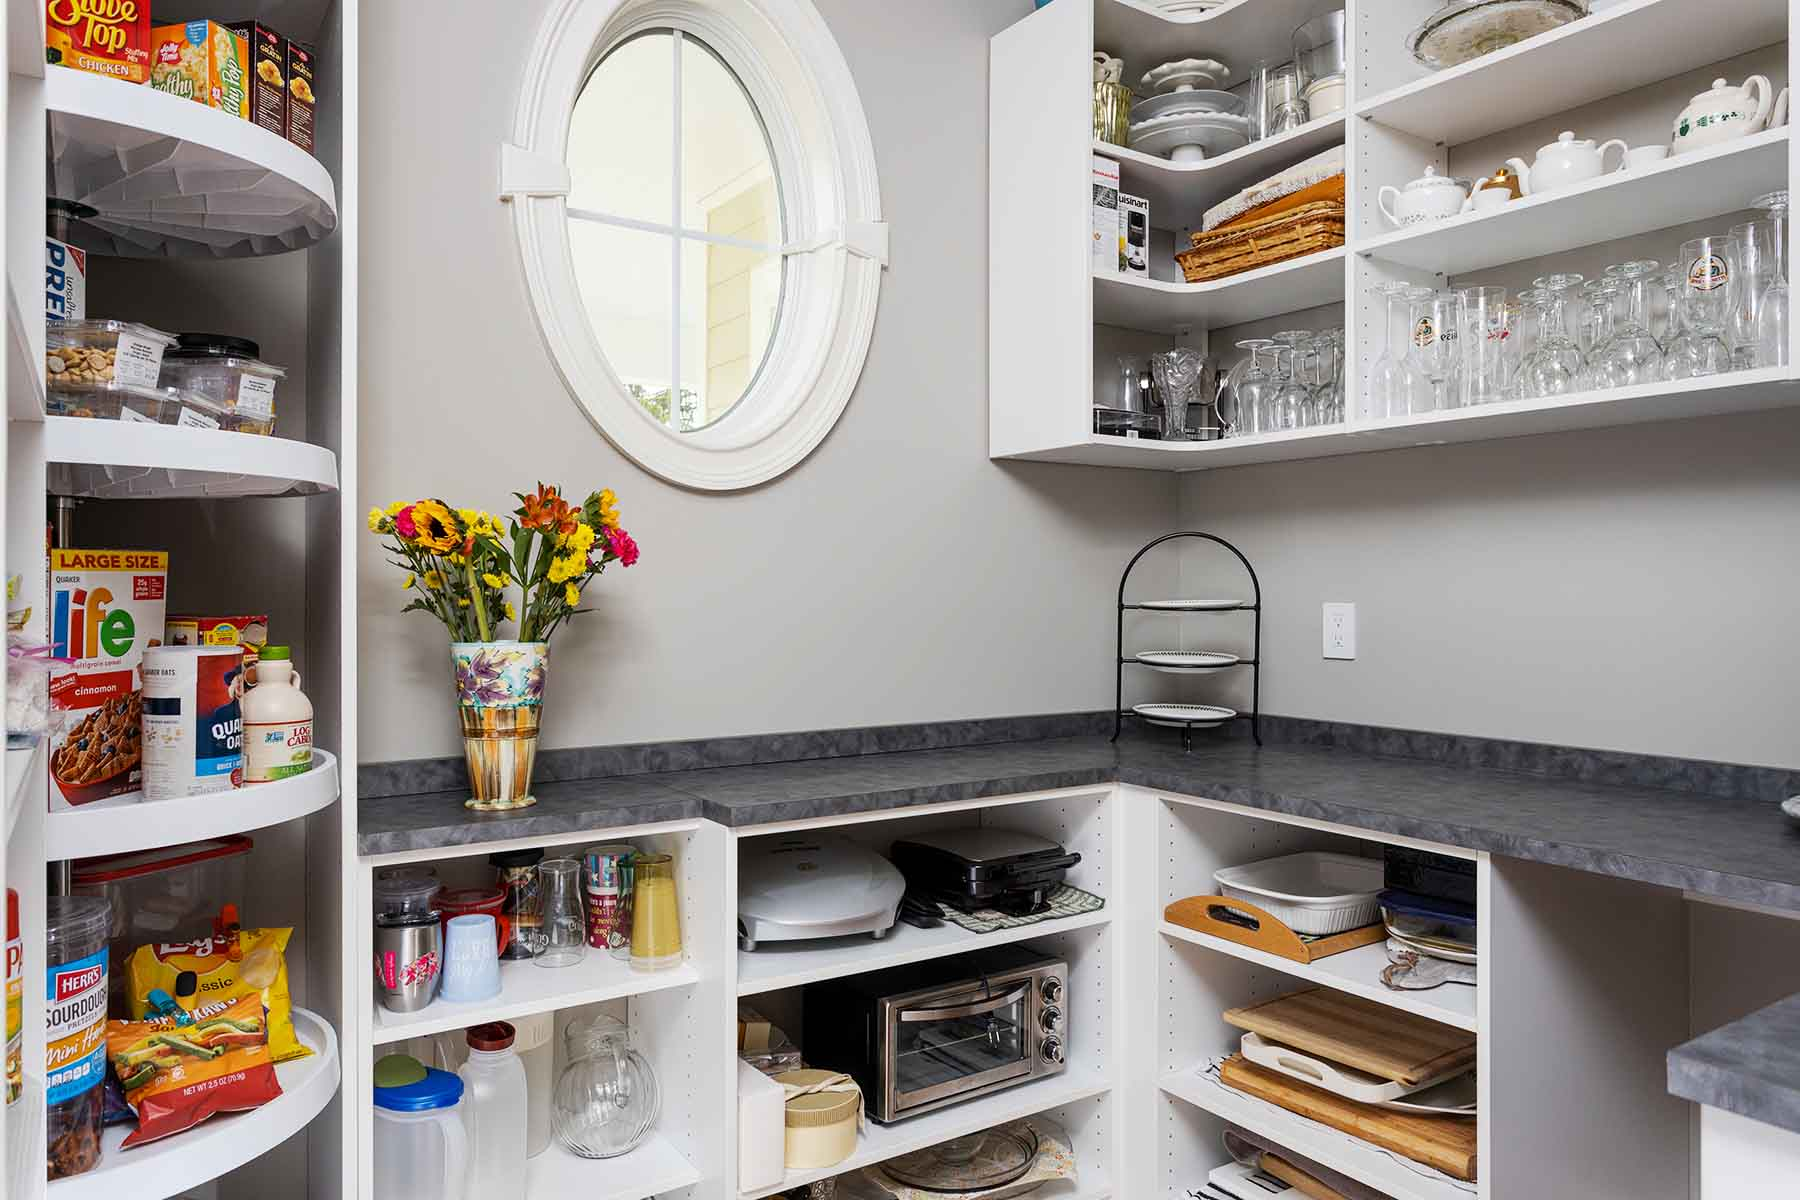 What Goes Where? How To Organize Your Kitchen Pantry Properly